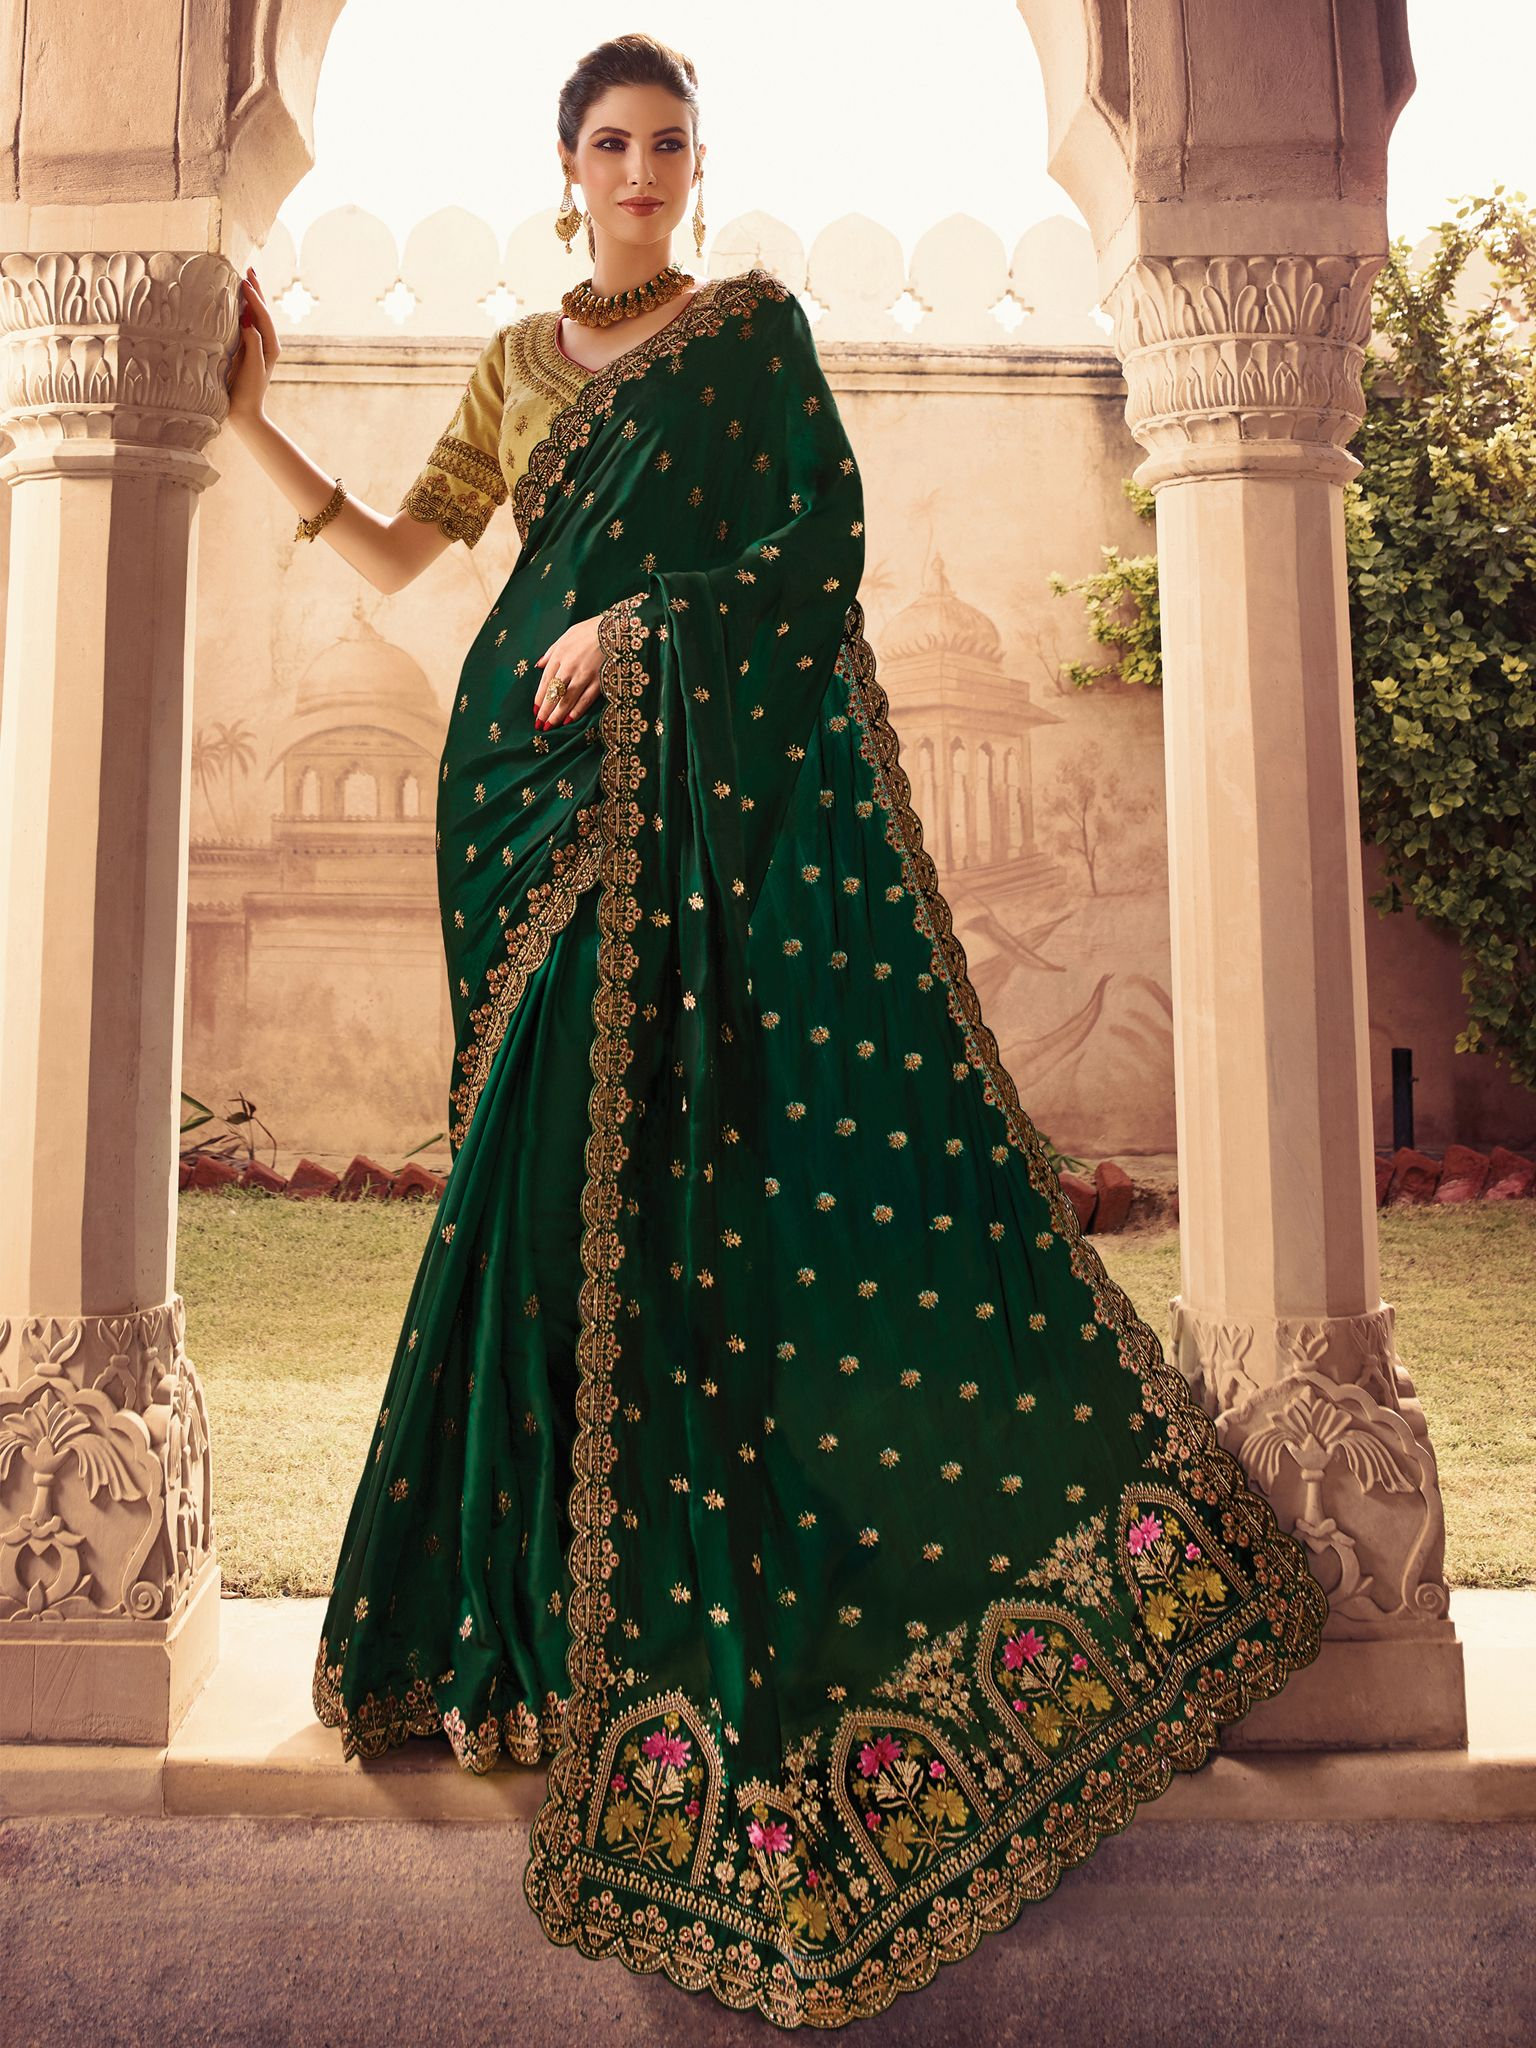 3f22be356e4a6c Dark Green Color Barfi Silk Fabric Heavy Saree